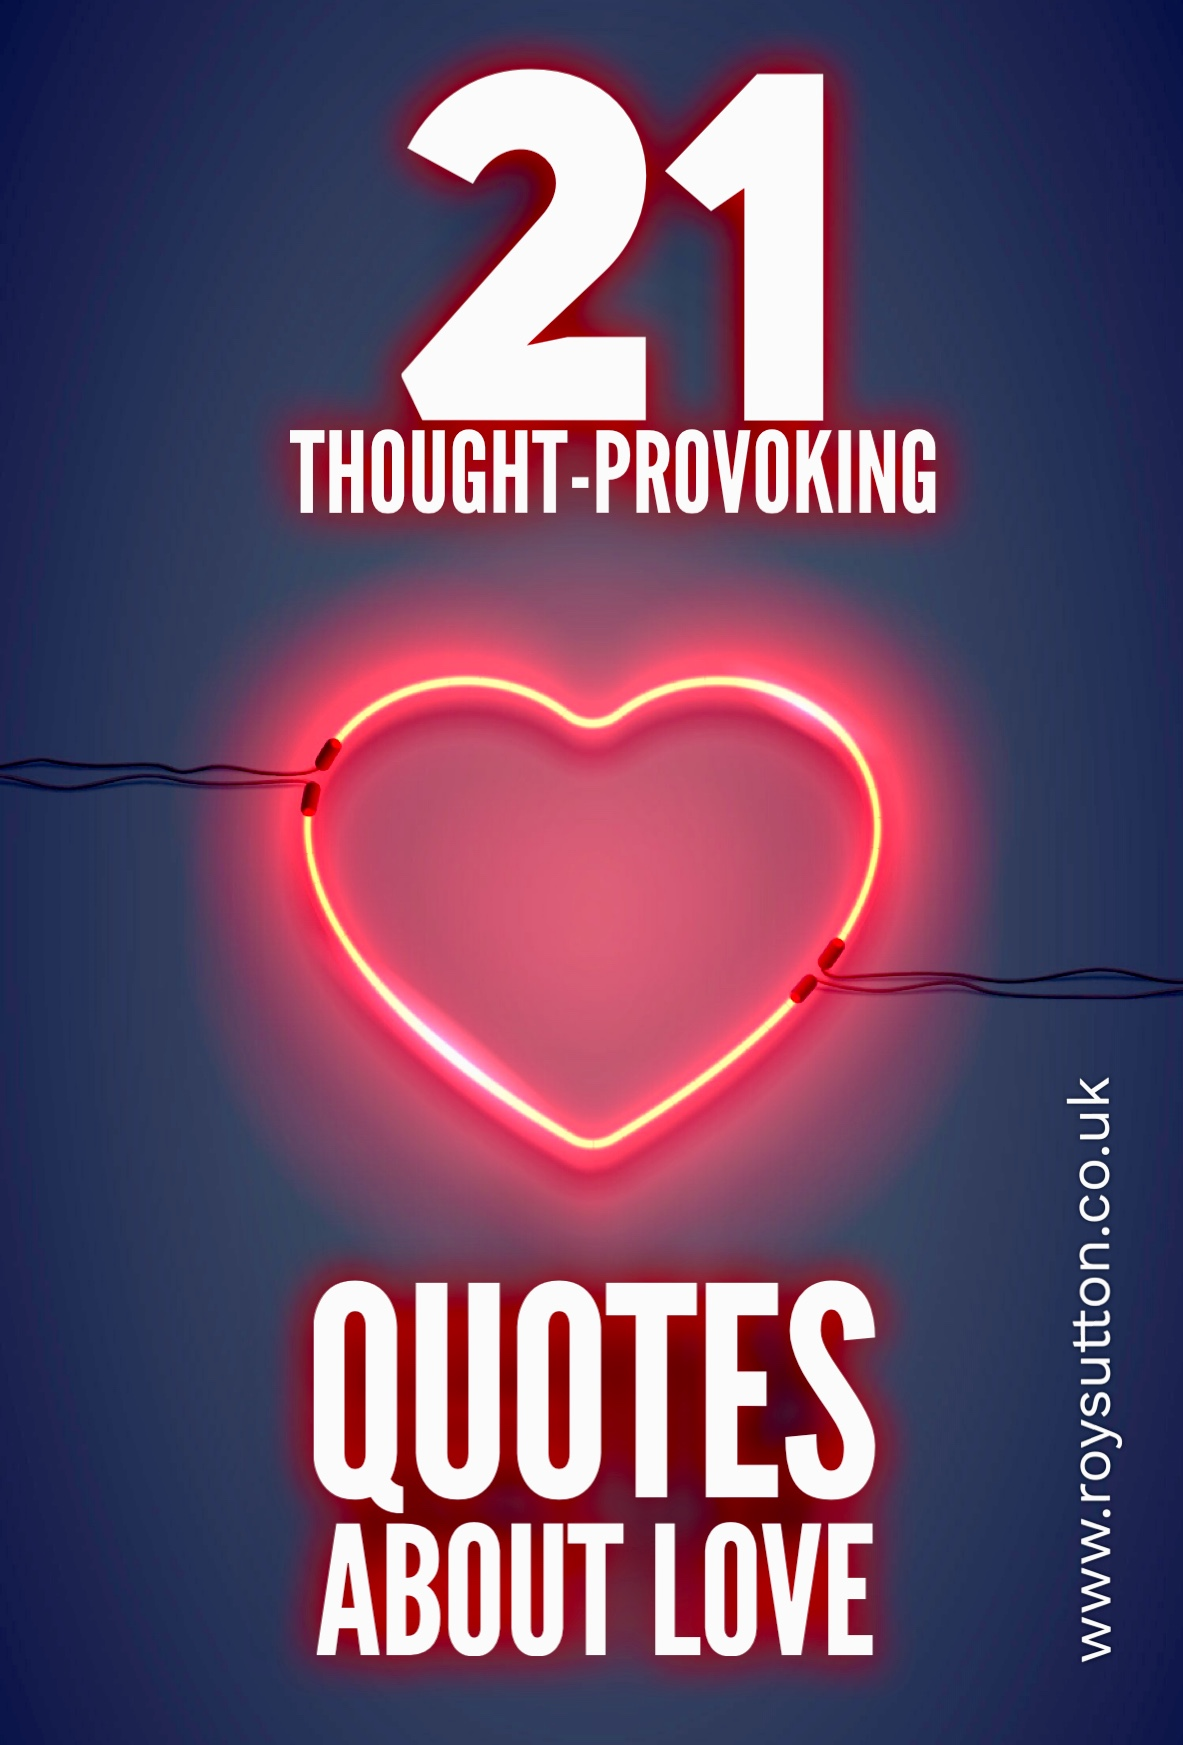 21 Thought Provoking Quotes About Love Roy Sutton